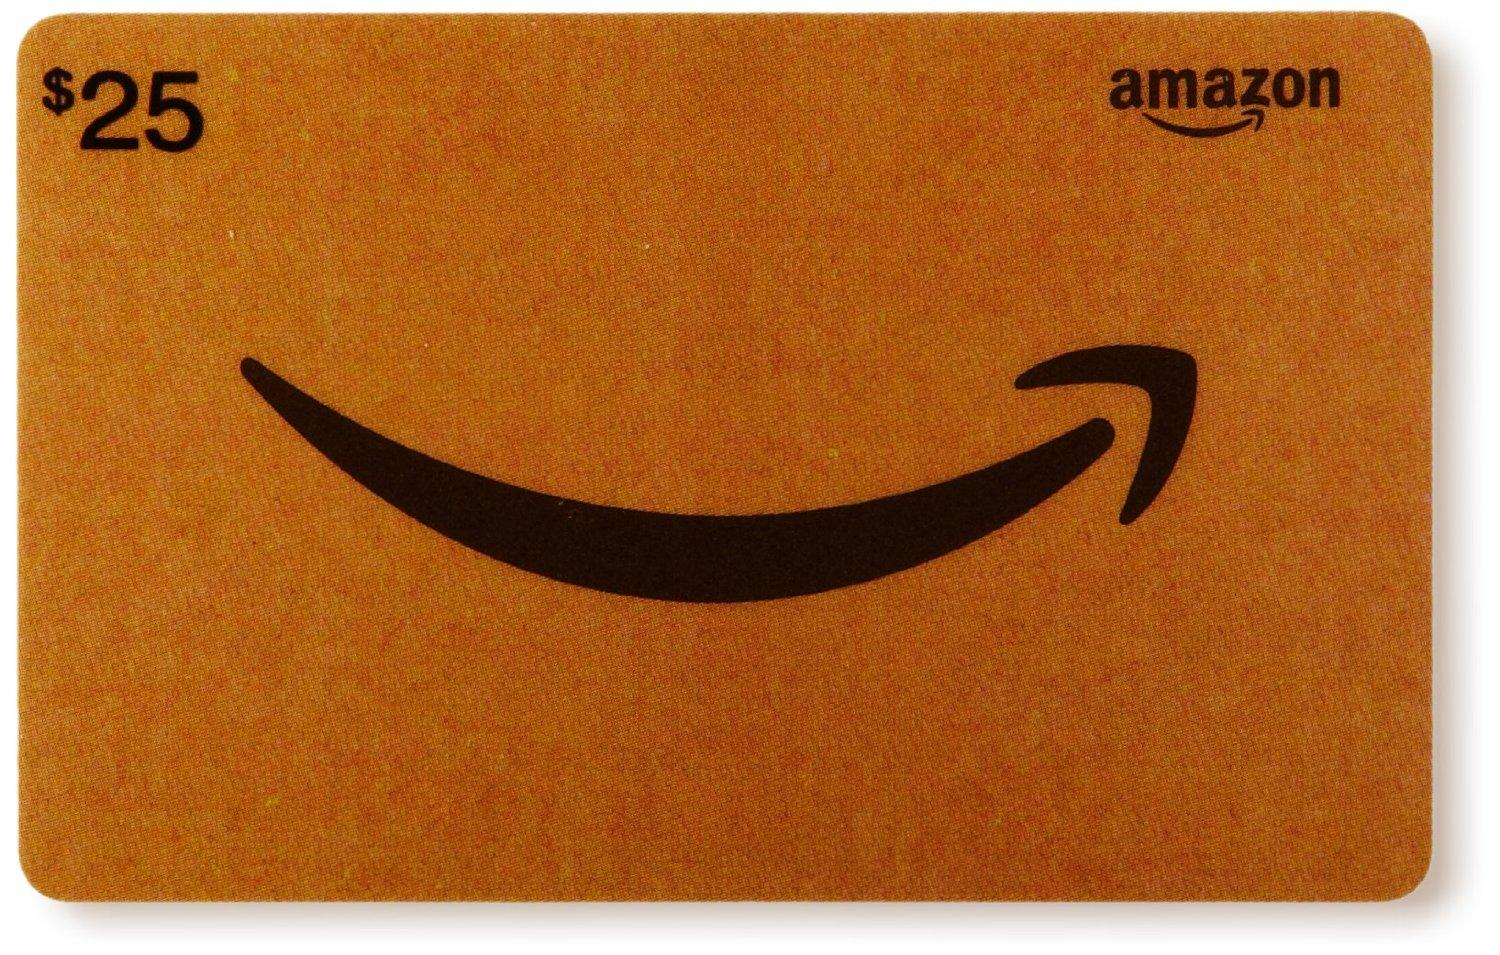 Starts at 12:00am PST on 10/7 Buy $25 Amazon Gift Card, Get $5 Credit